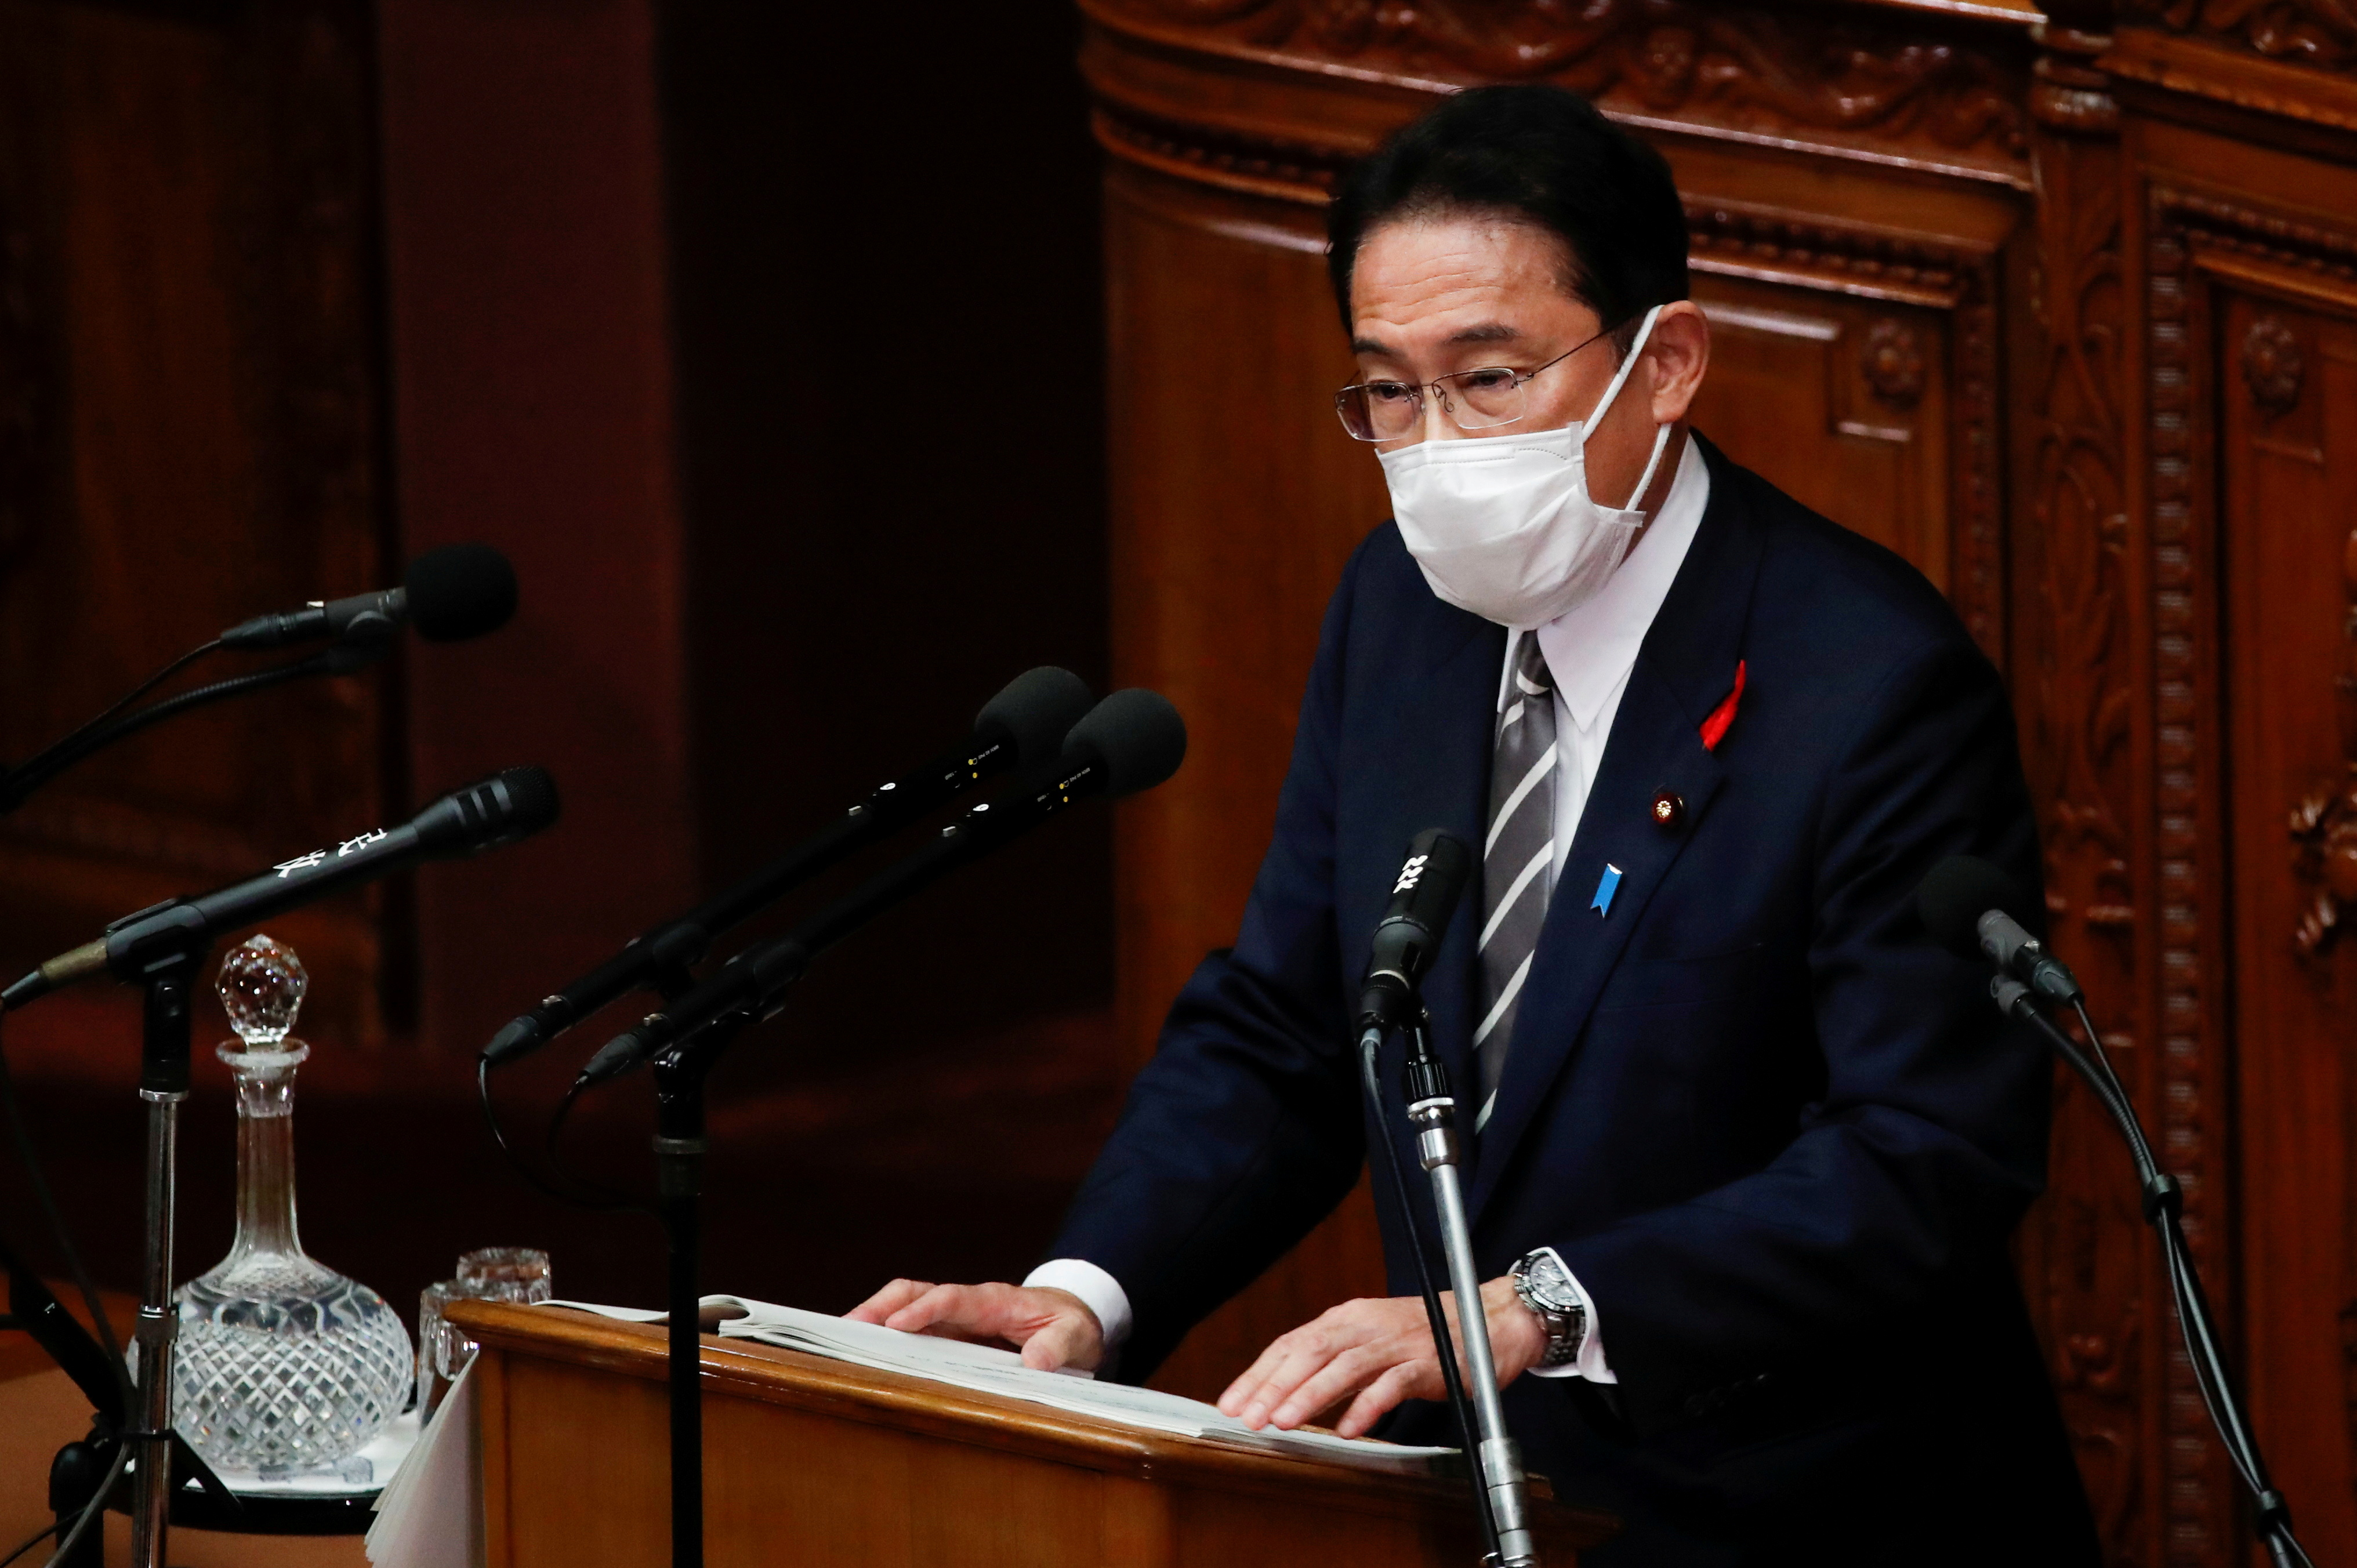 Japan's new prime minister Fumio Kishida delivers his first policy speech at parliament in Tokyo, Japan, October 8, 2021.   REUTERS/Kim Kyung-Hoon/File Photo